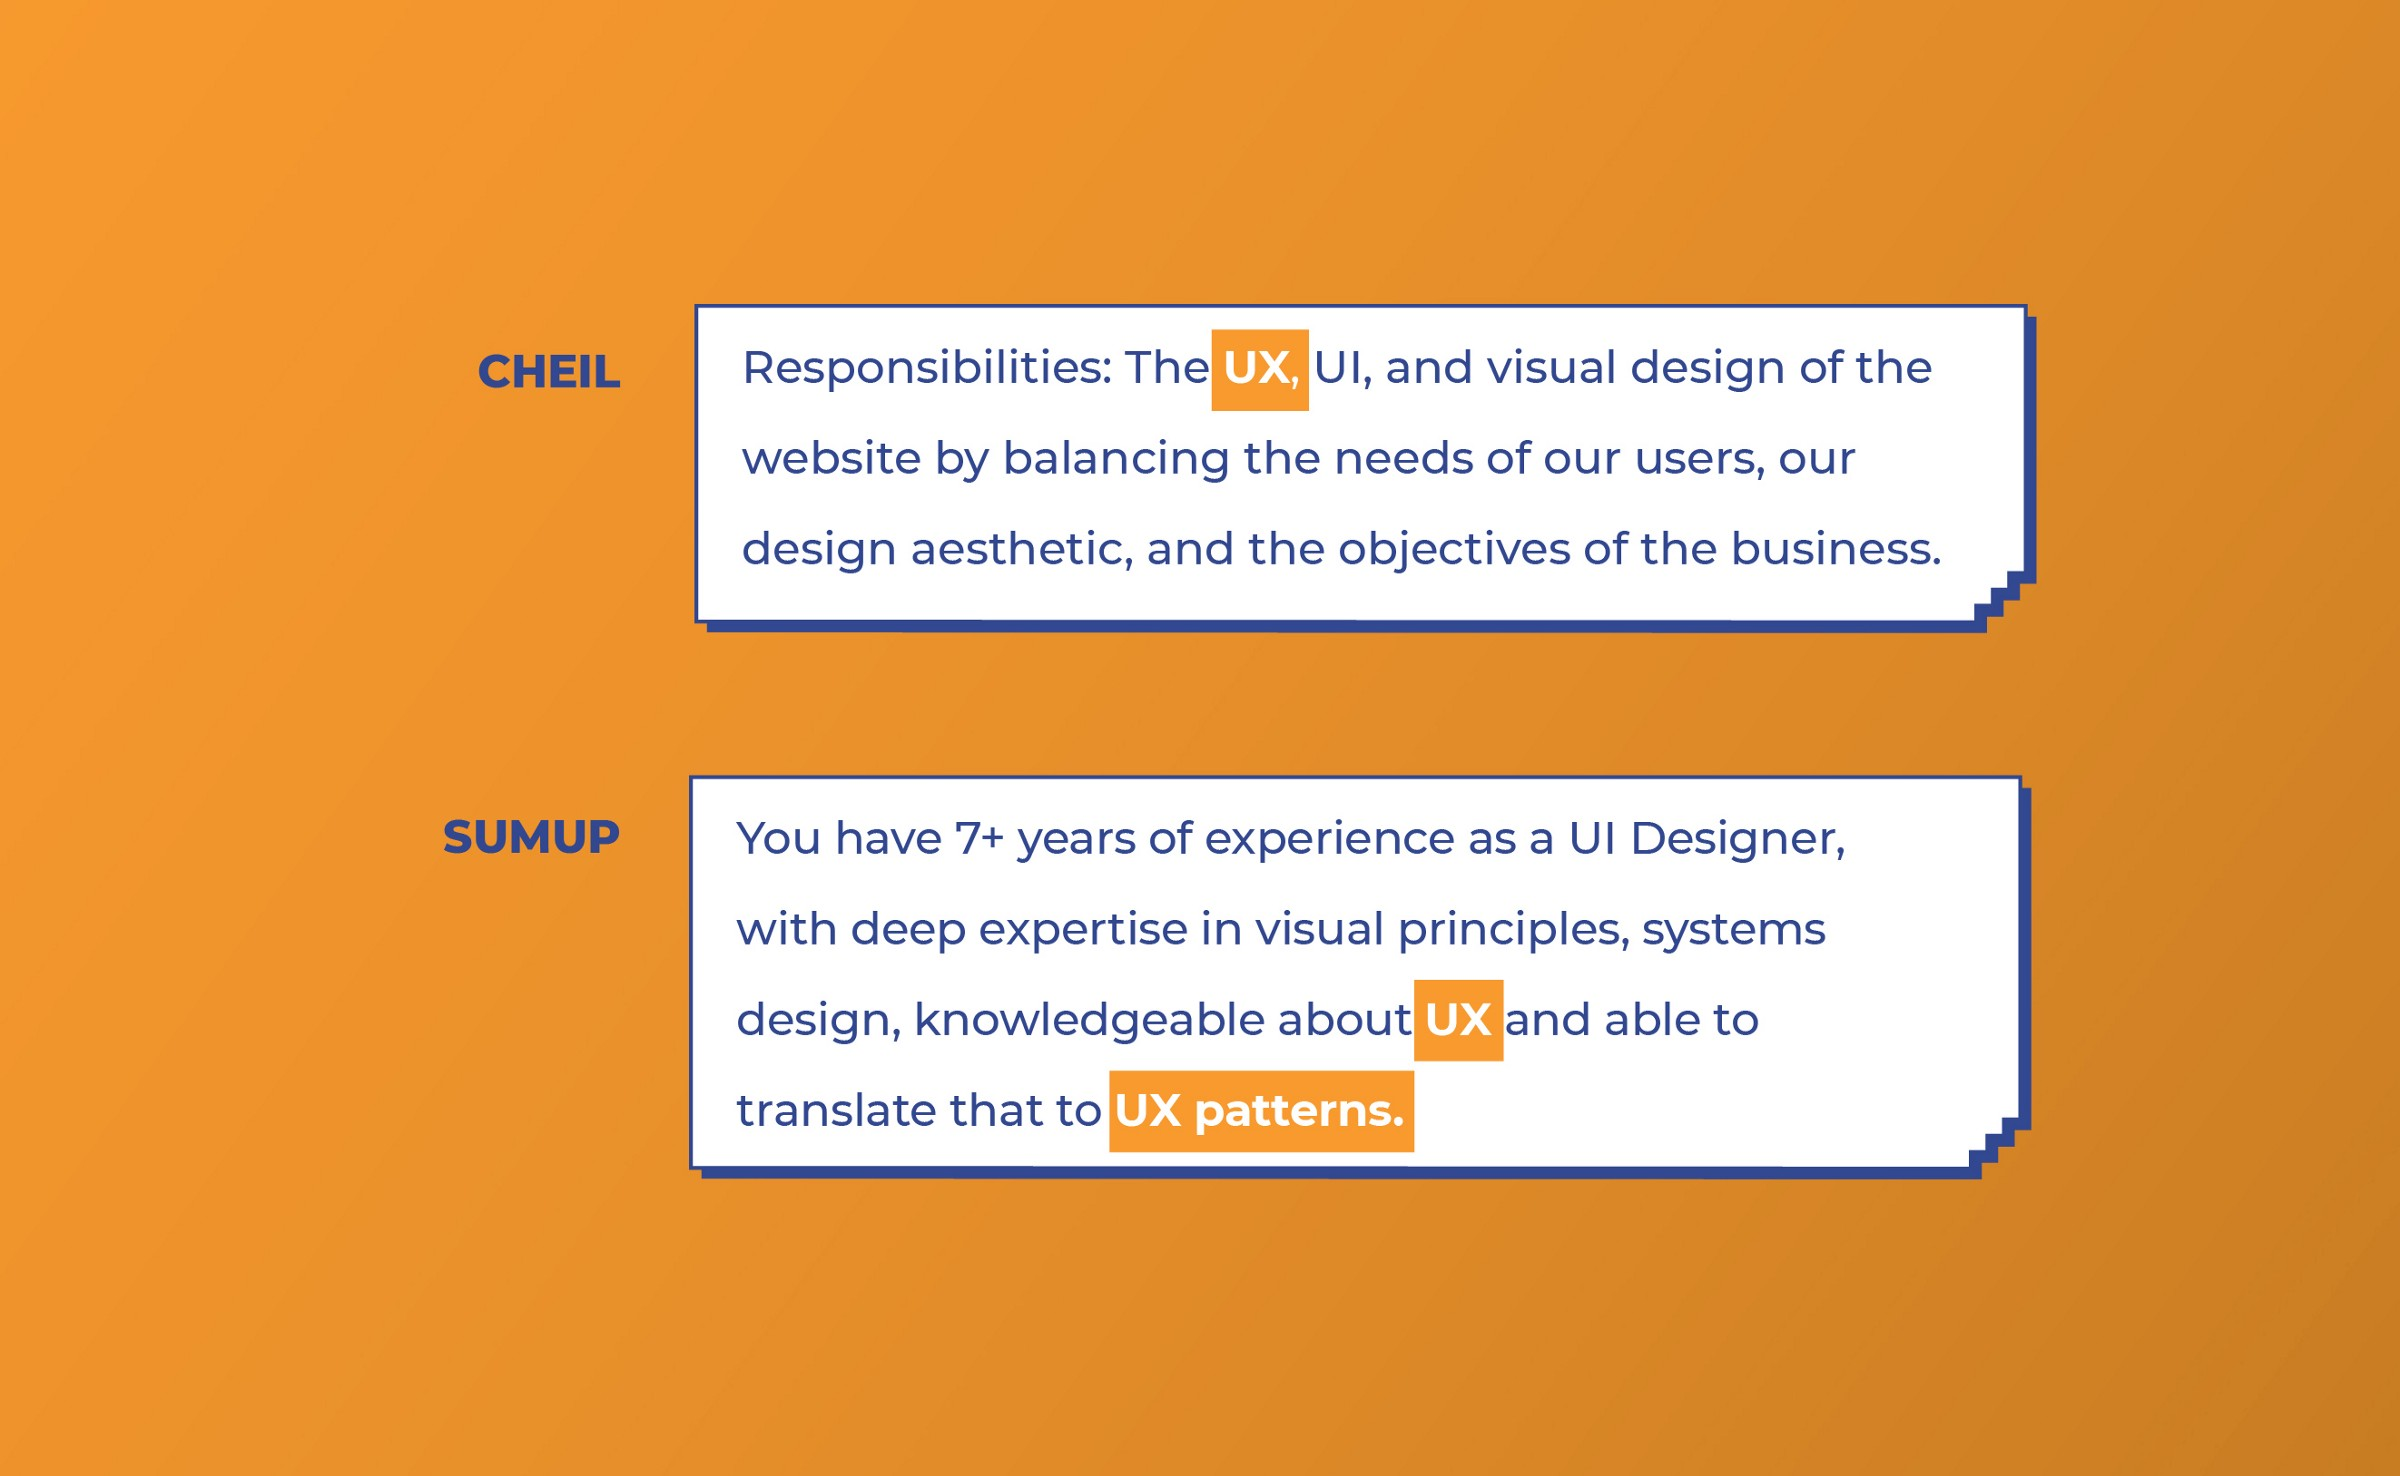 Cheil and Sumpup look for UX work from UI designers